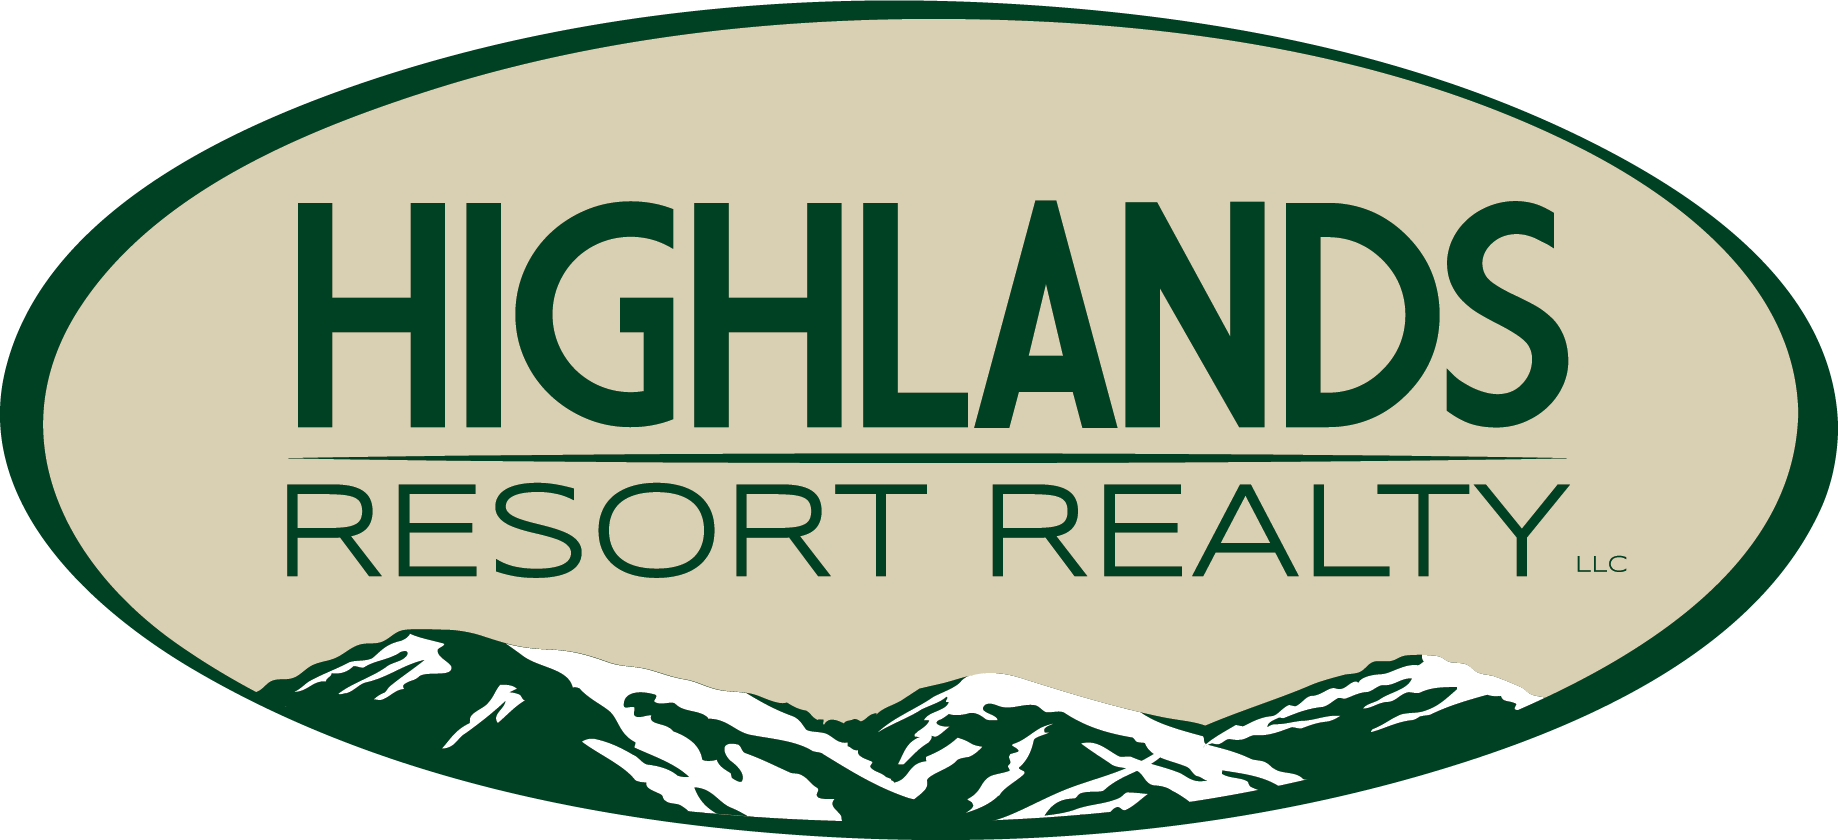 Highlands Resort Realty logo